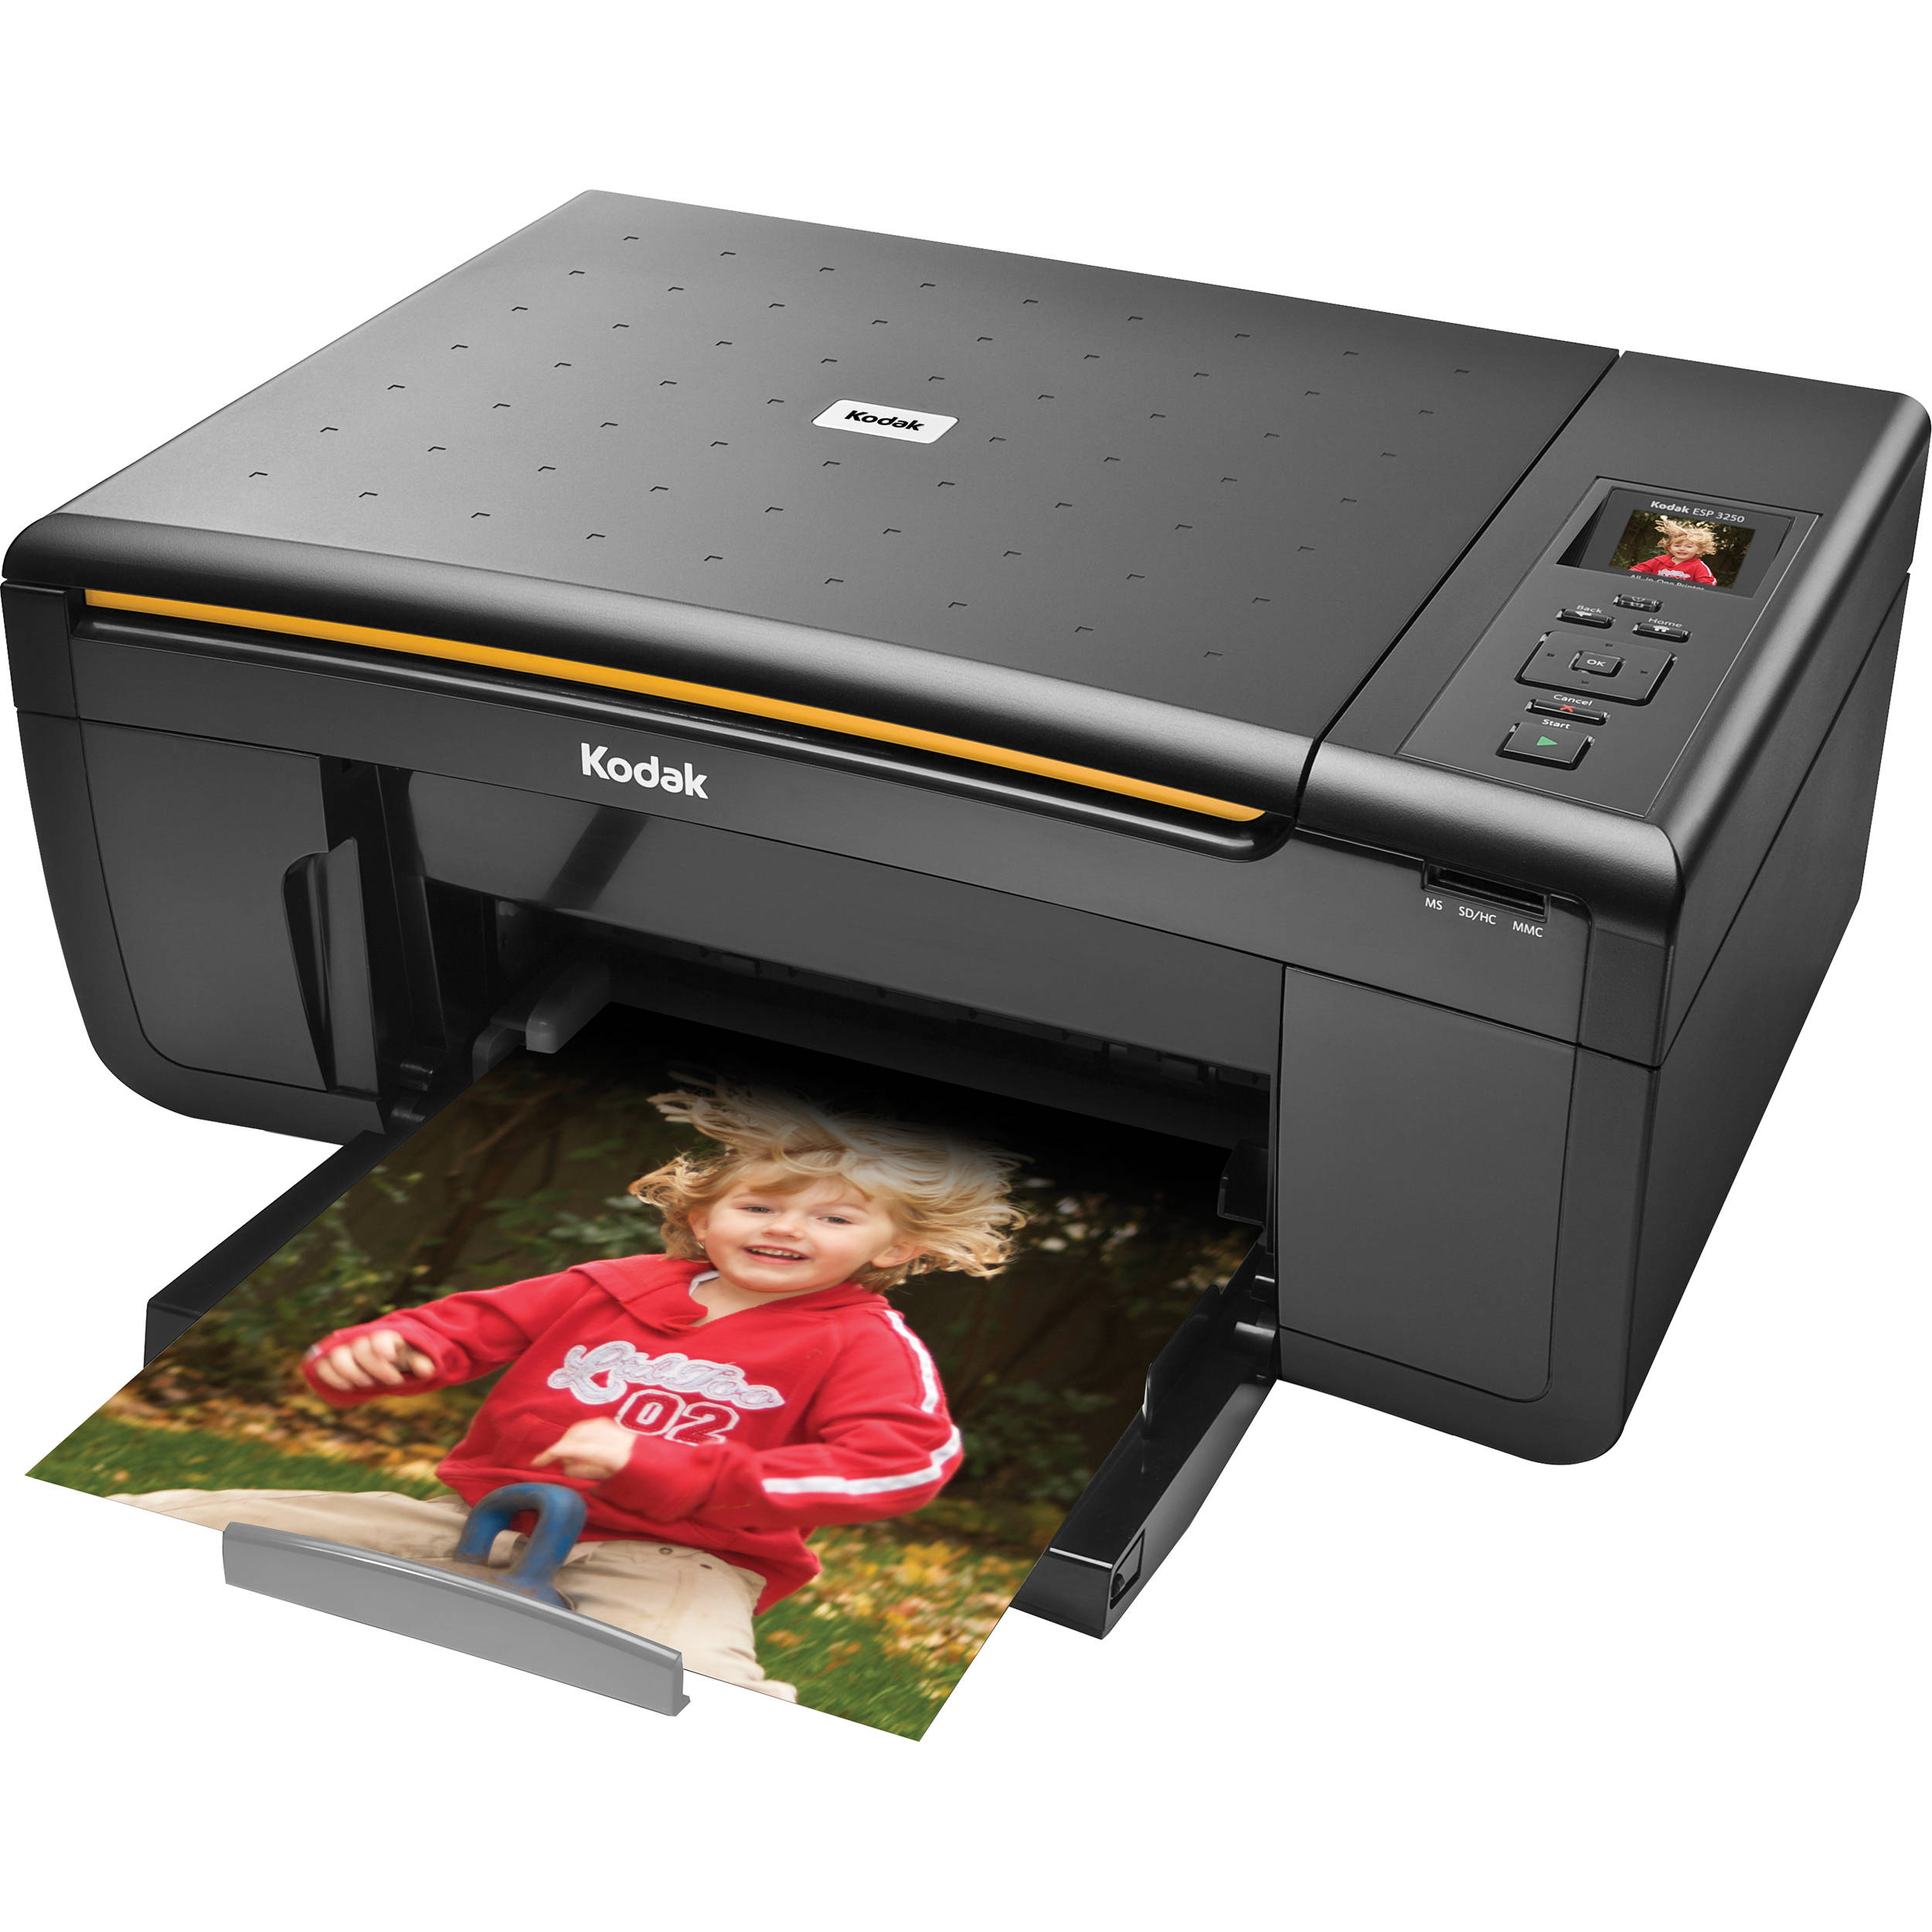 kodak esp 3250 all in one inkjet printer 8946139 b h photo video rh bhphotovideo com kodak aio printer software mac download kodak aio printer software mac download